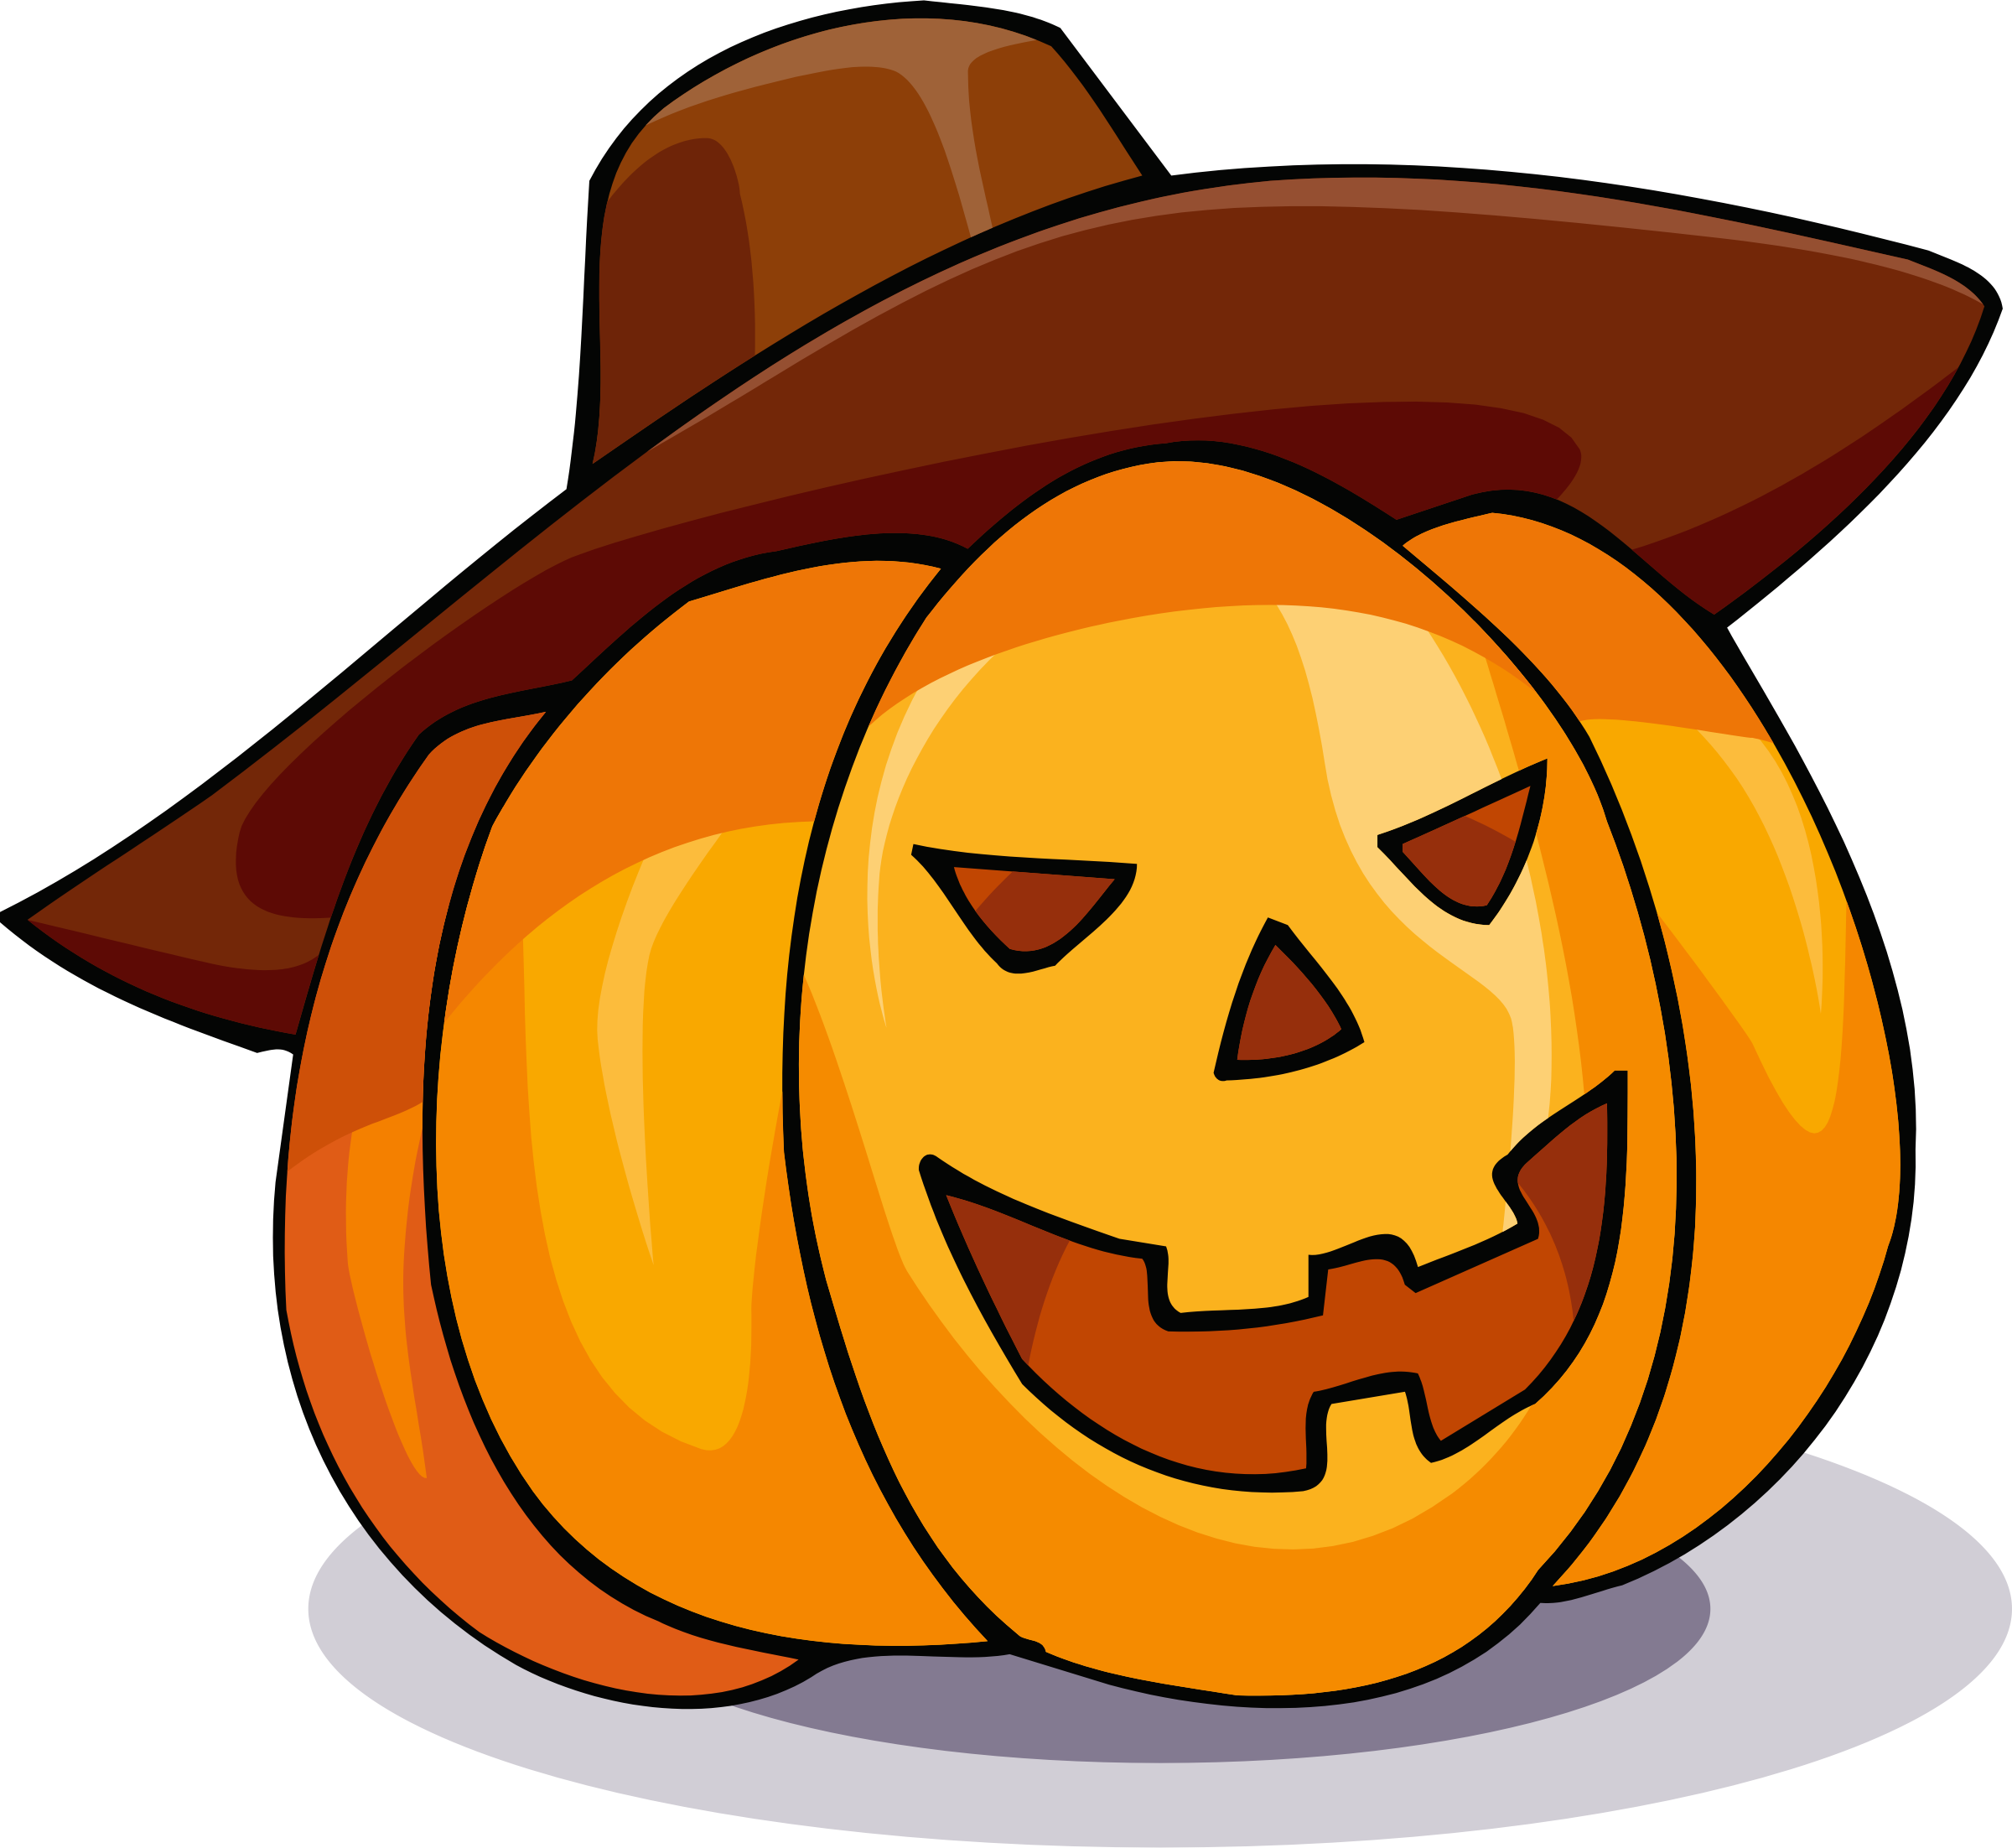 Pumpkin in a hat by Magnesus